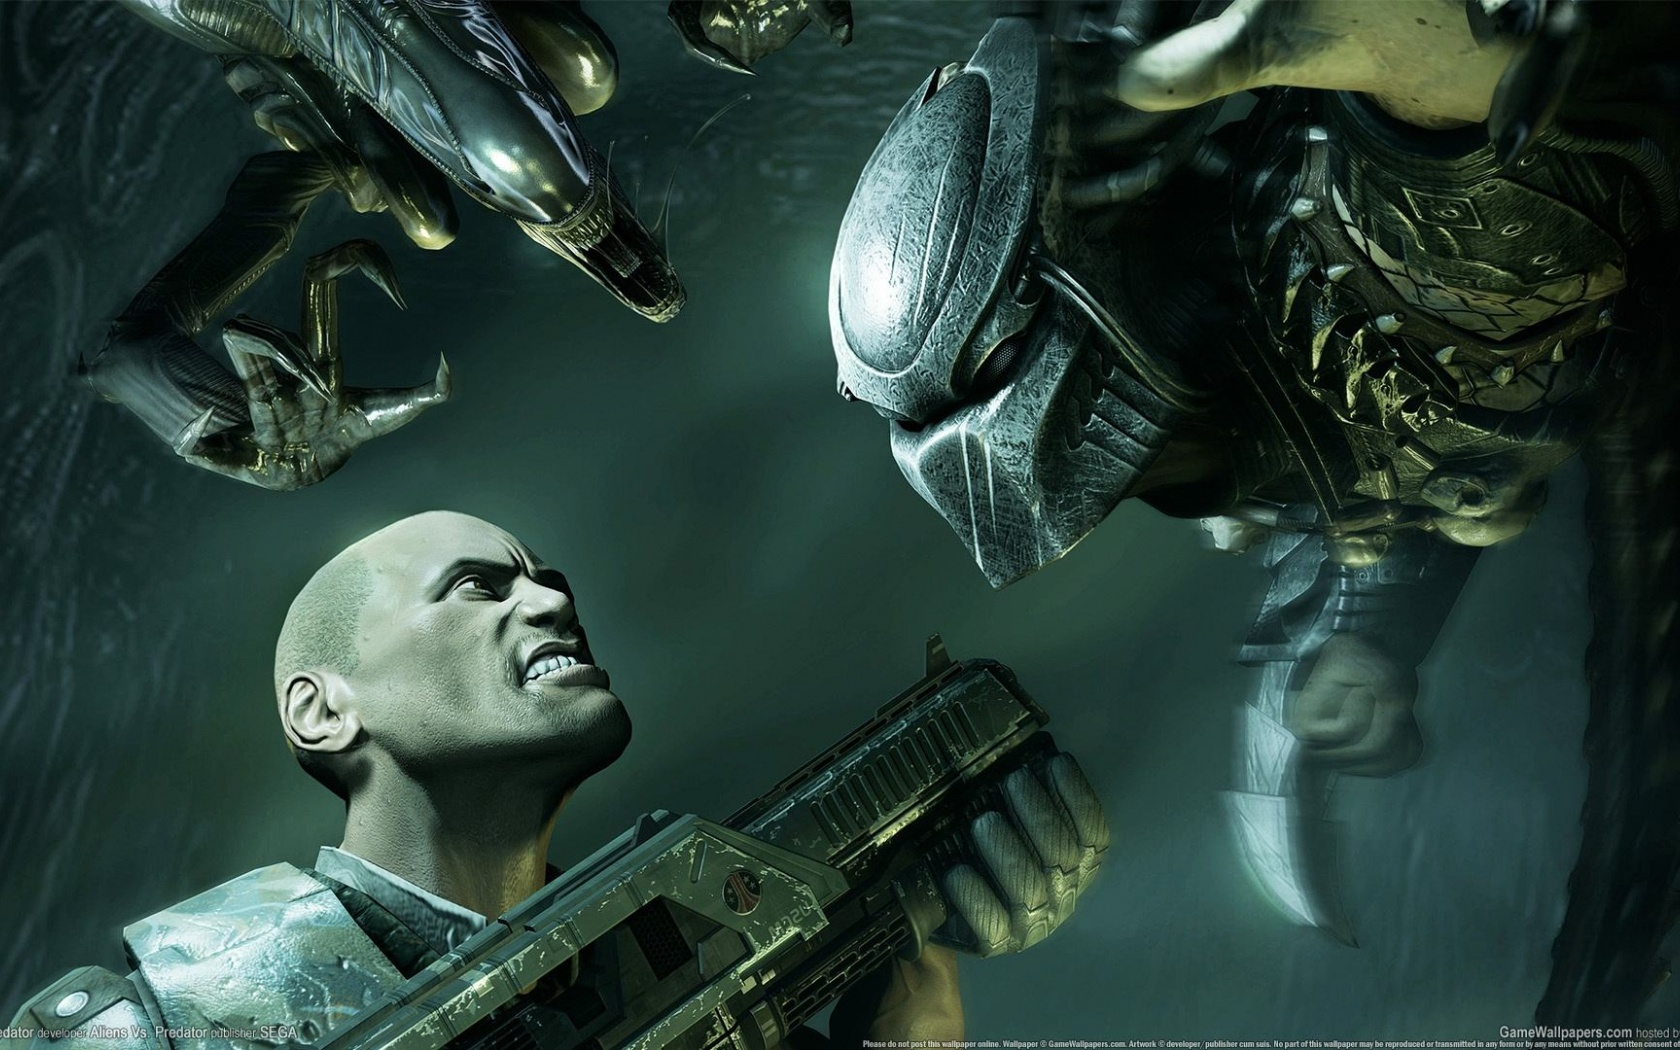 1680x1050 Alien Vs Predator, aliens, console, games